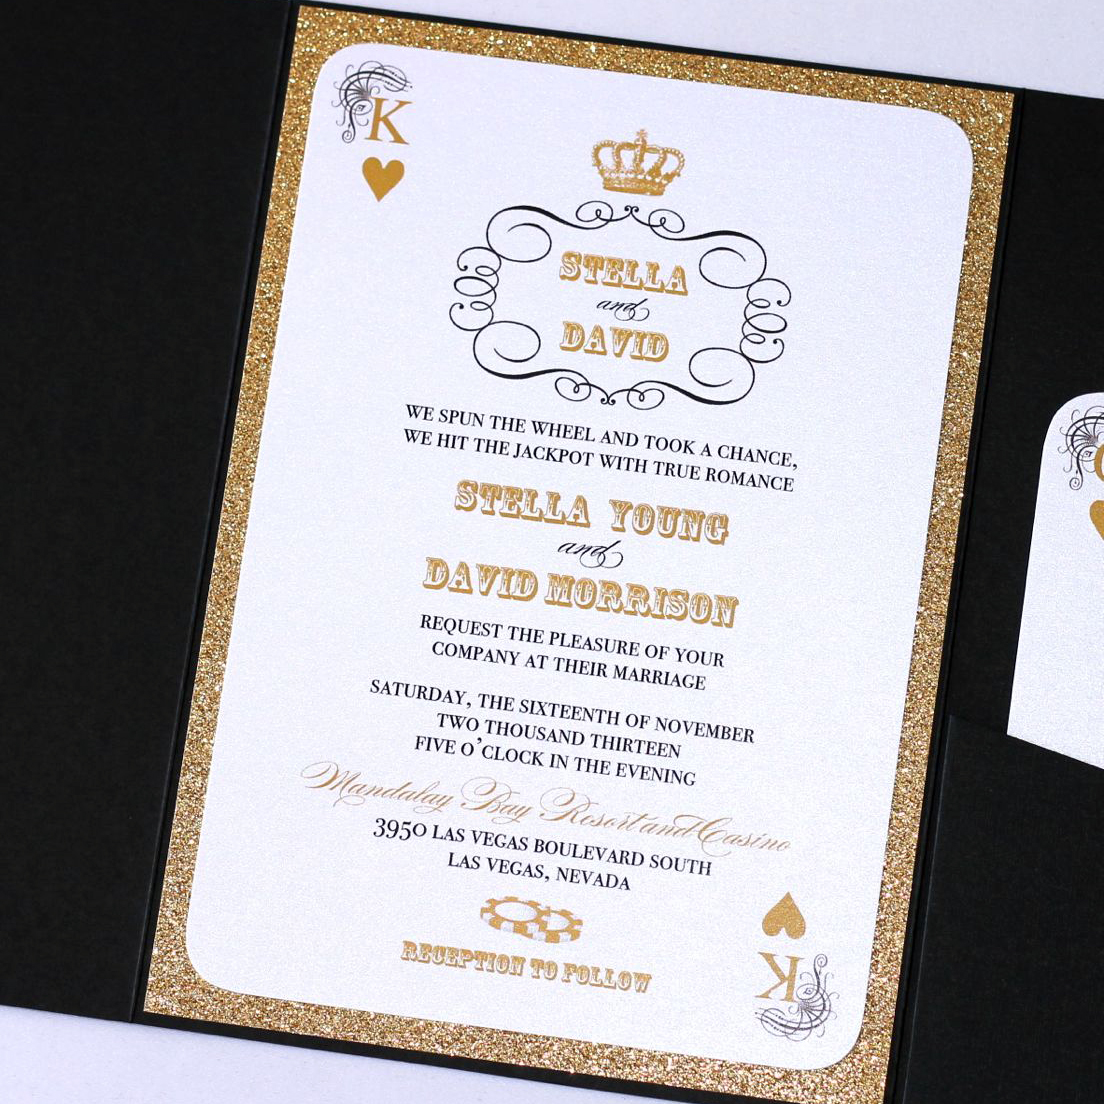 STELLA Las Vegas Wedding Invitation - Gold Glitter - Embellished ...